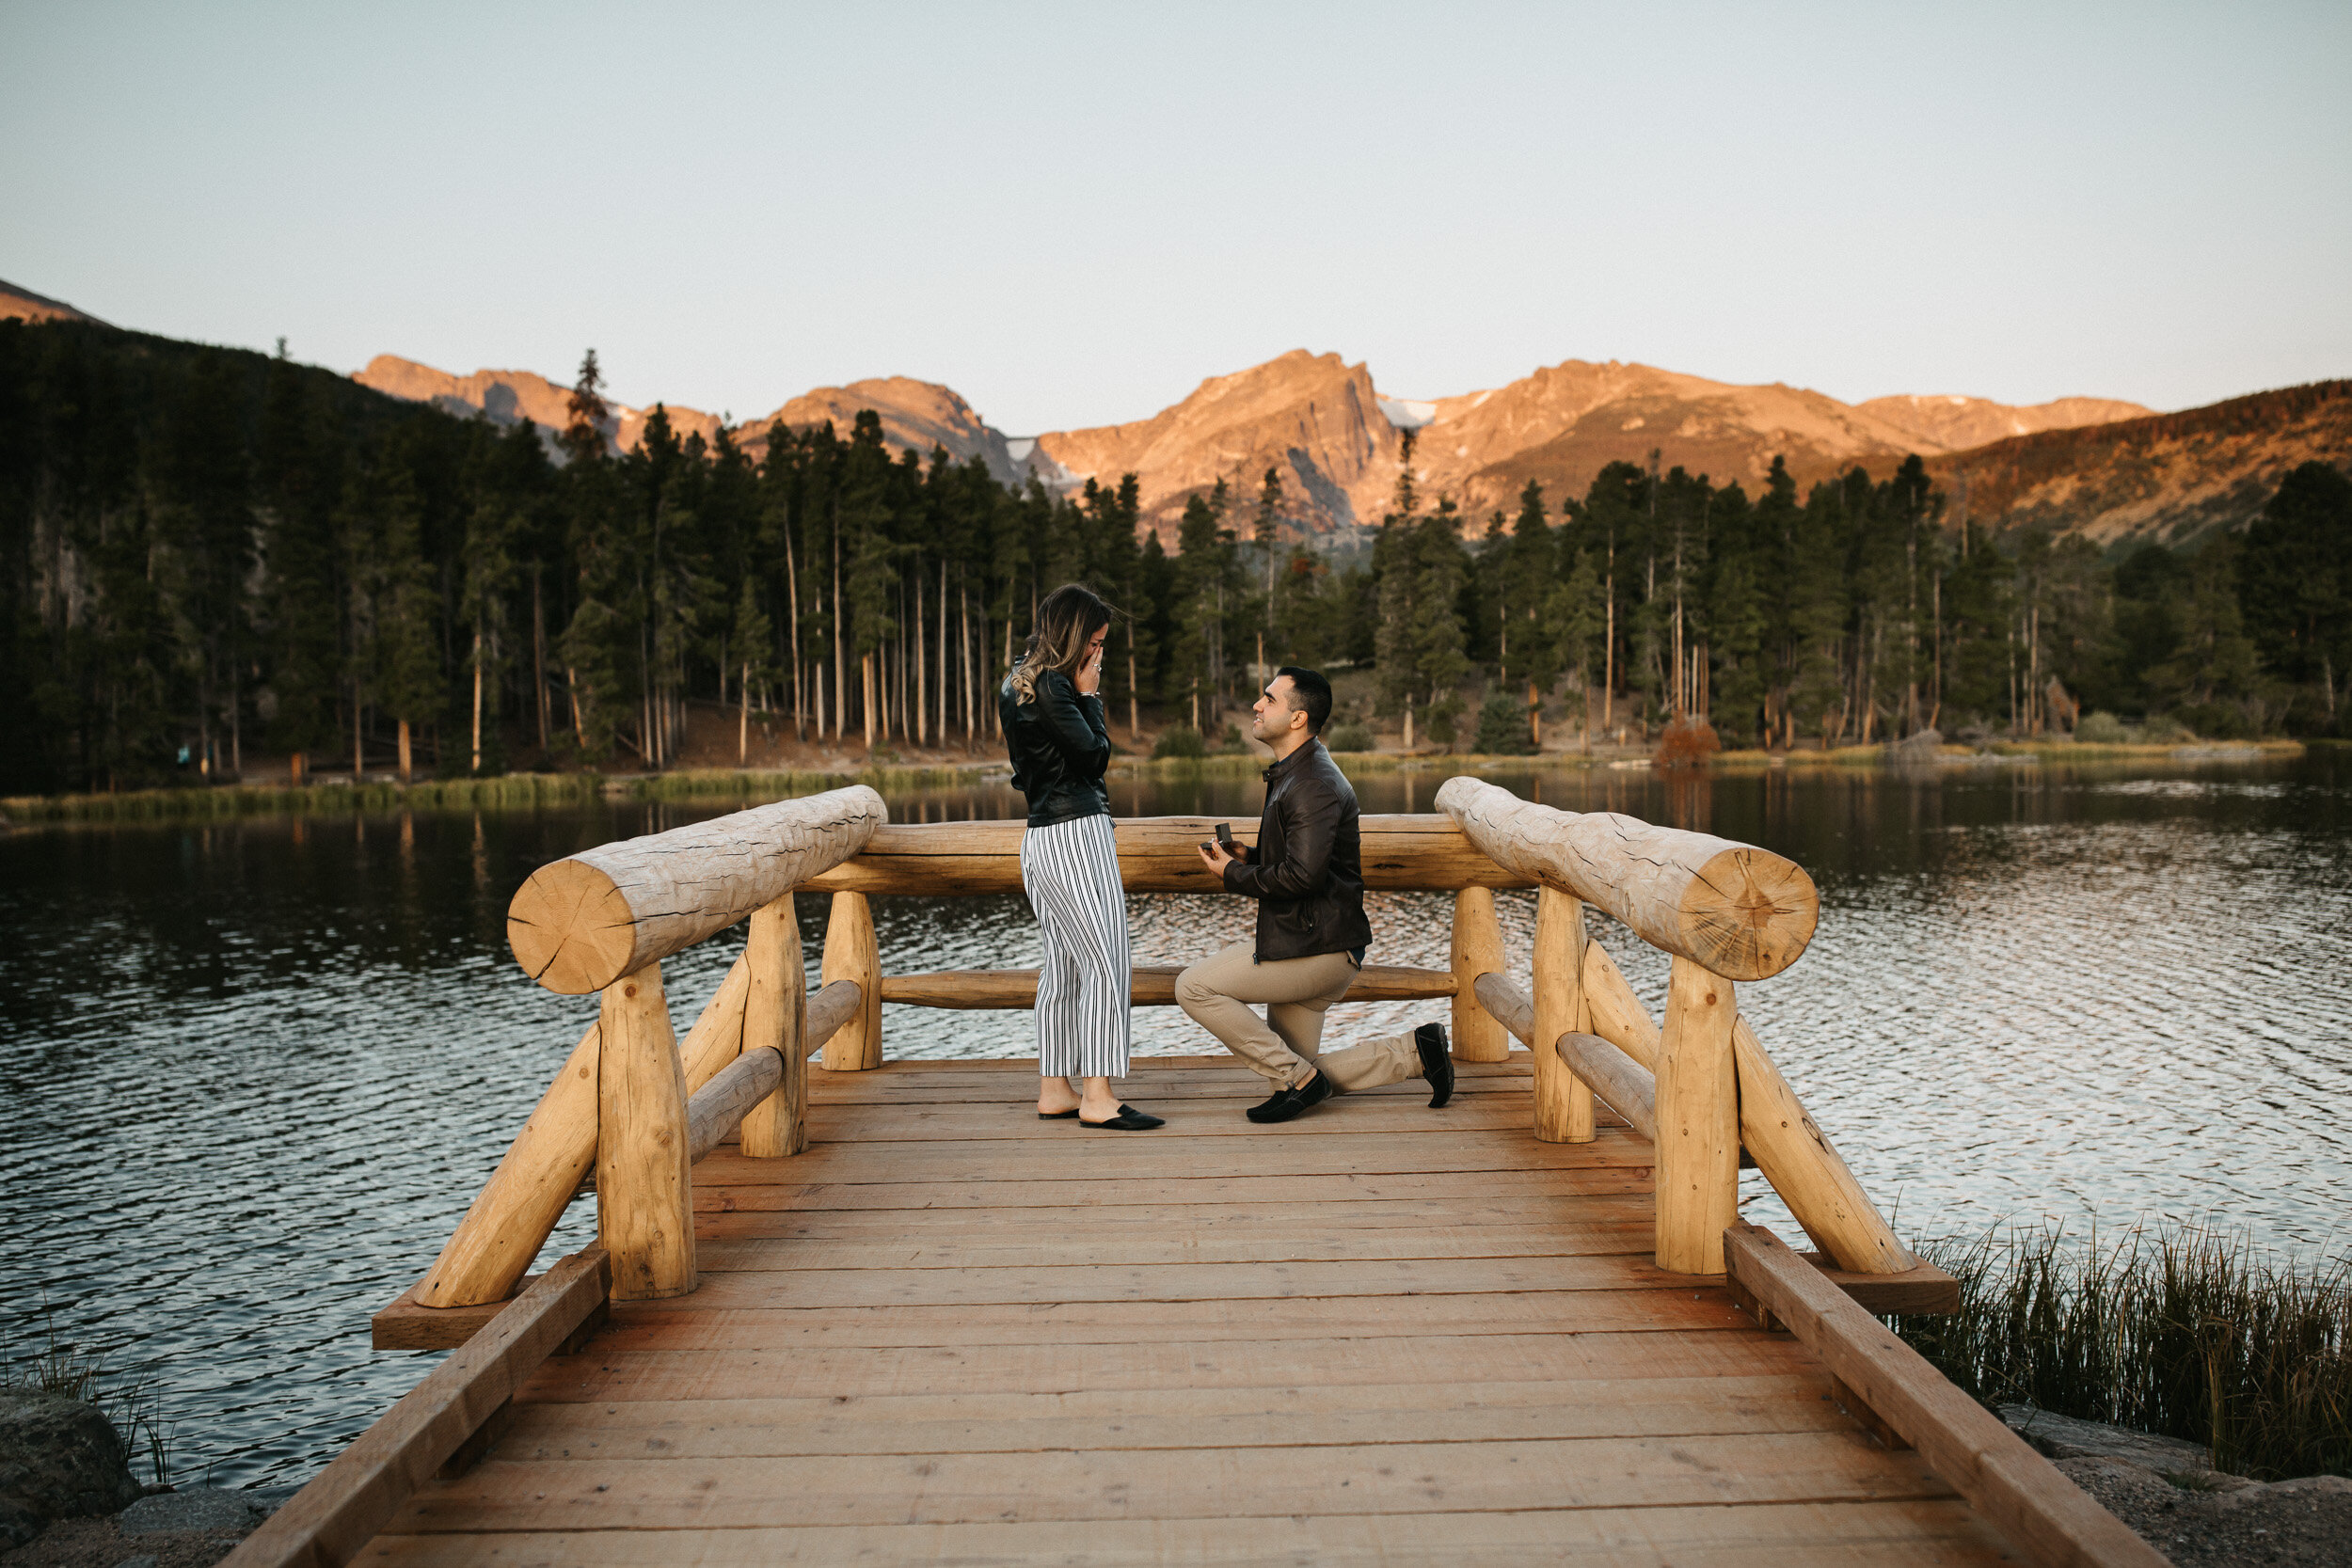 Asher_Proposal_Rocky_Mountain_Nation_Park_Sprague_Lake_115.jpg